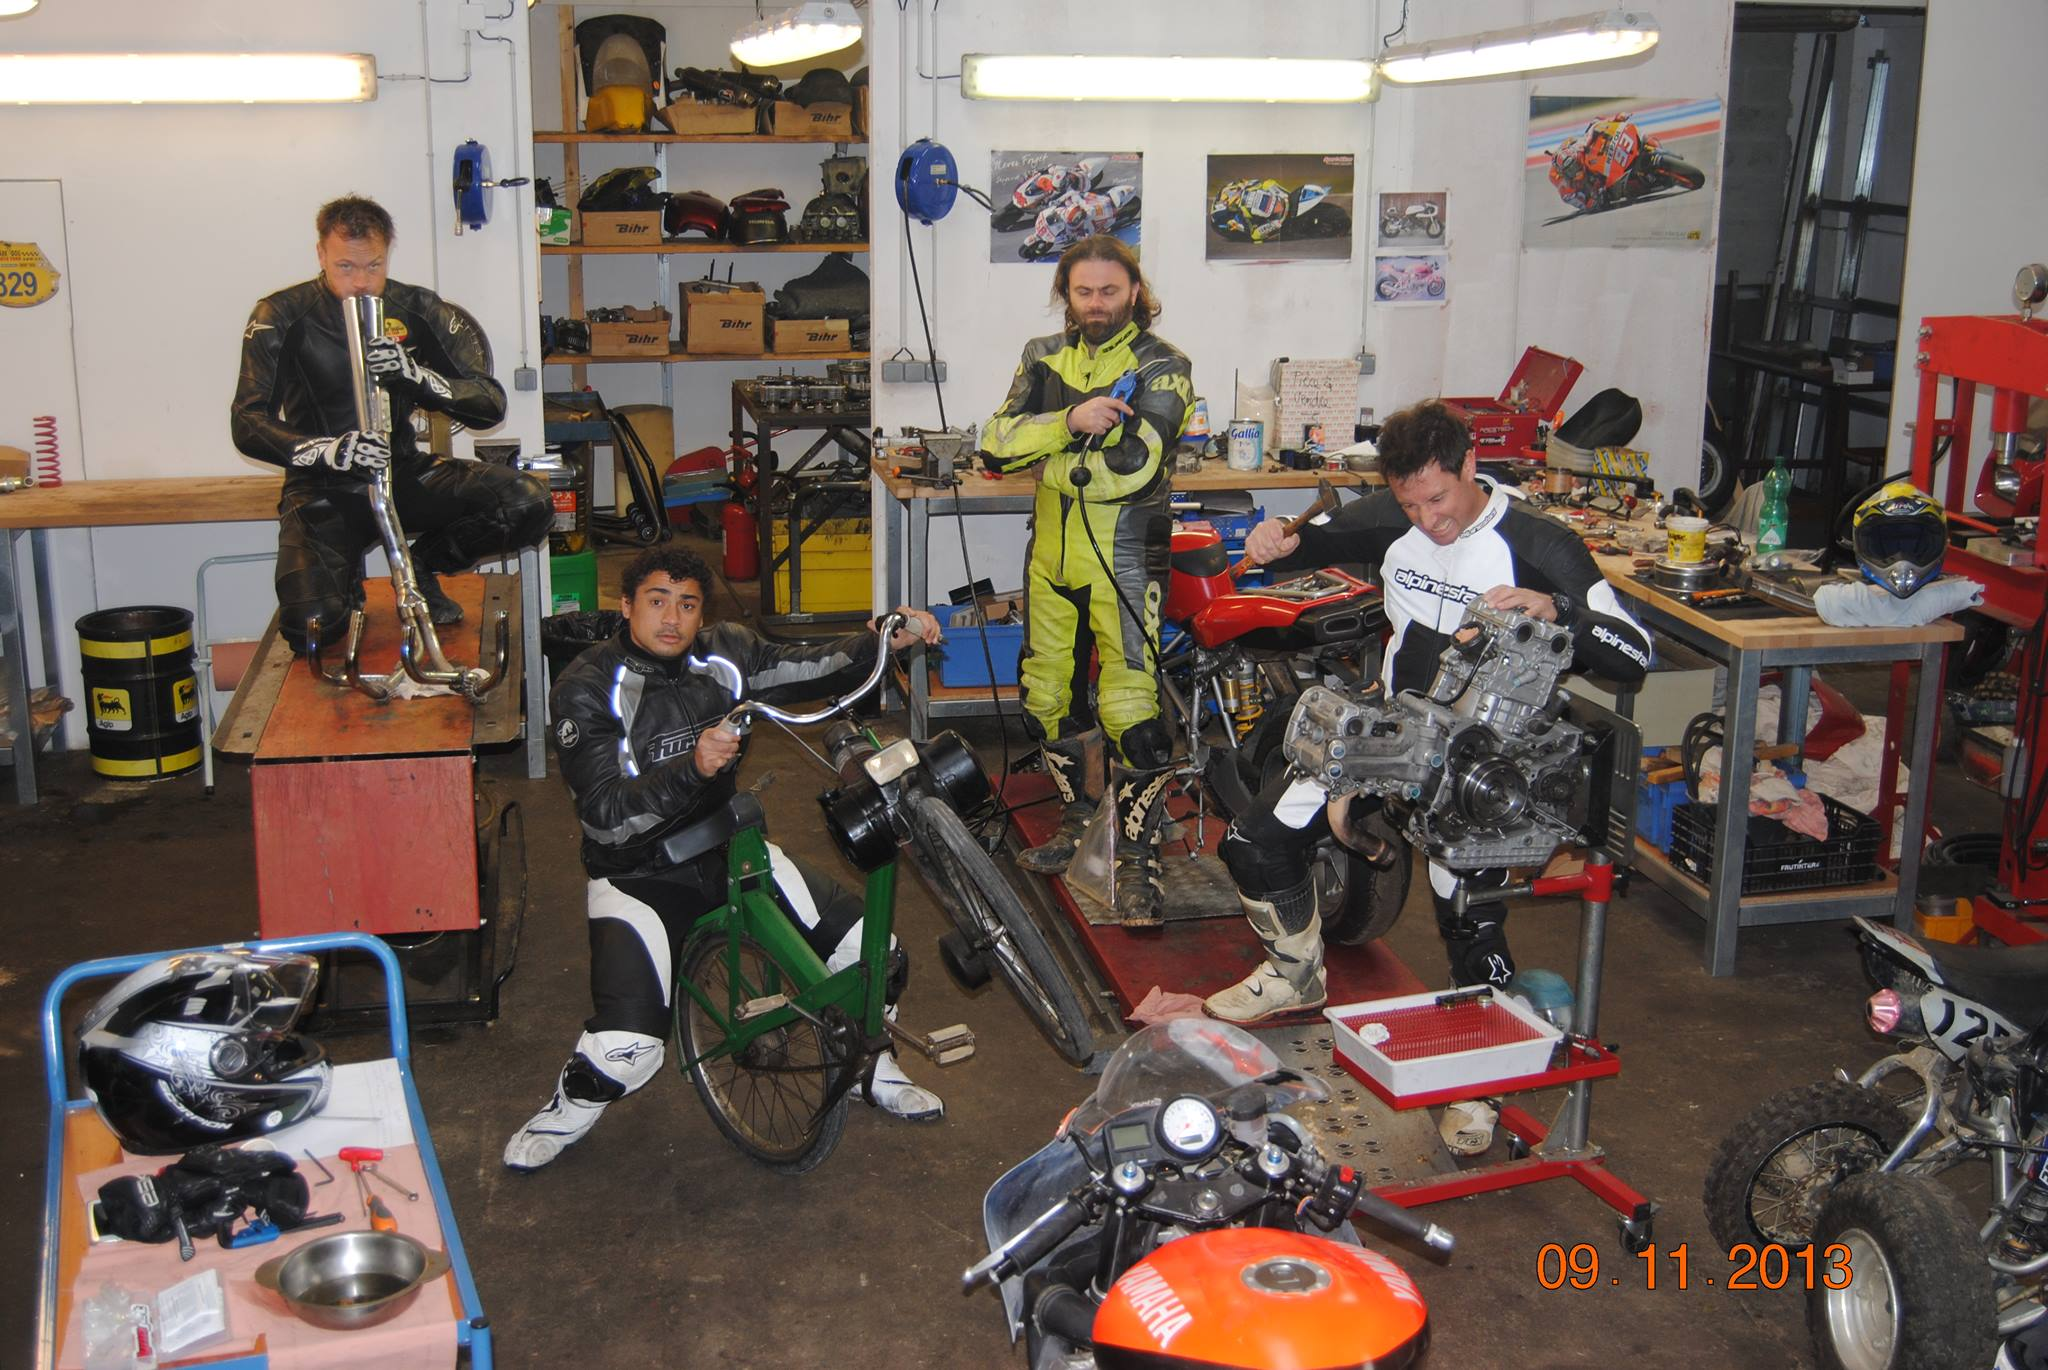 Soir e team fnf chez franck garage franck garage for Garage preparation moto